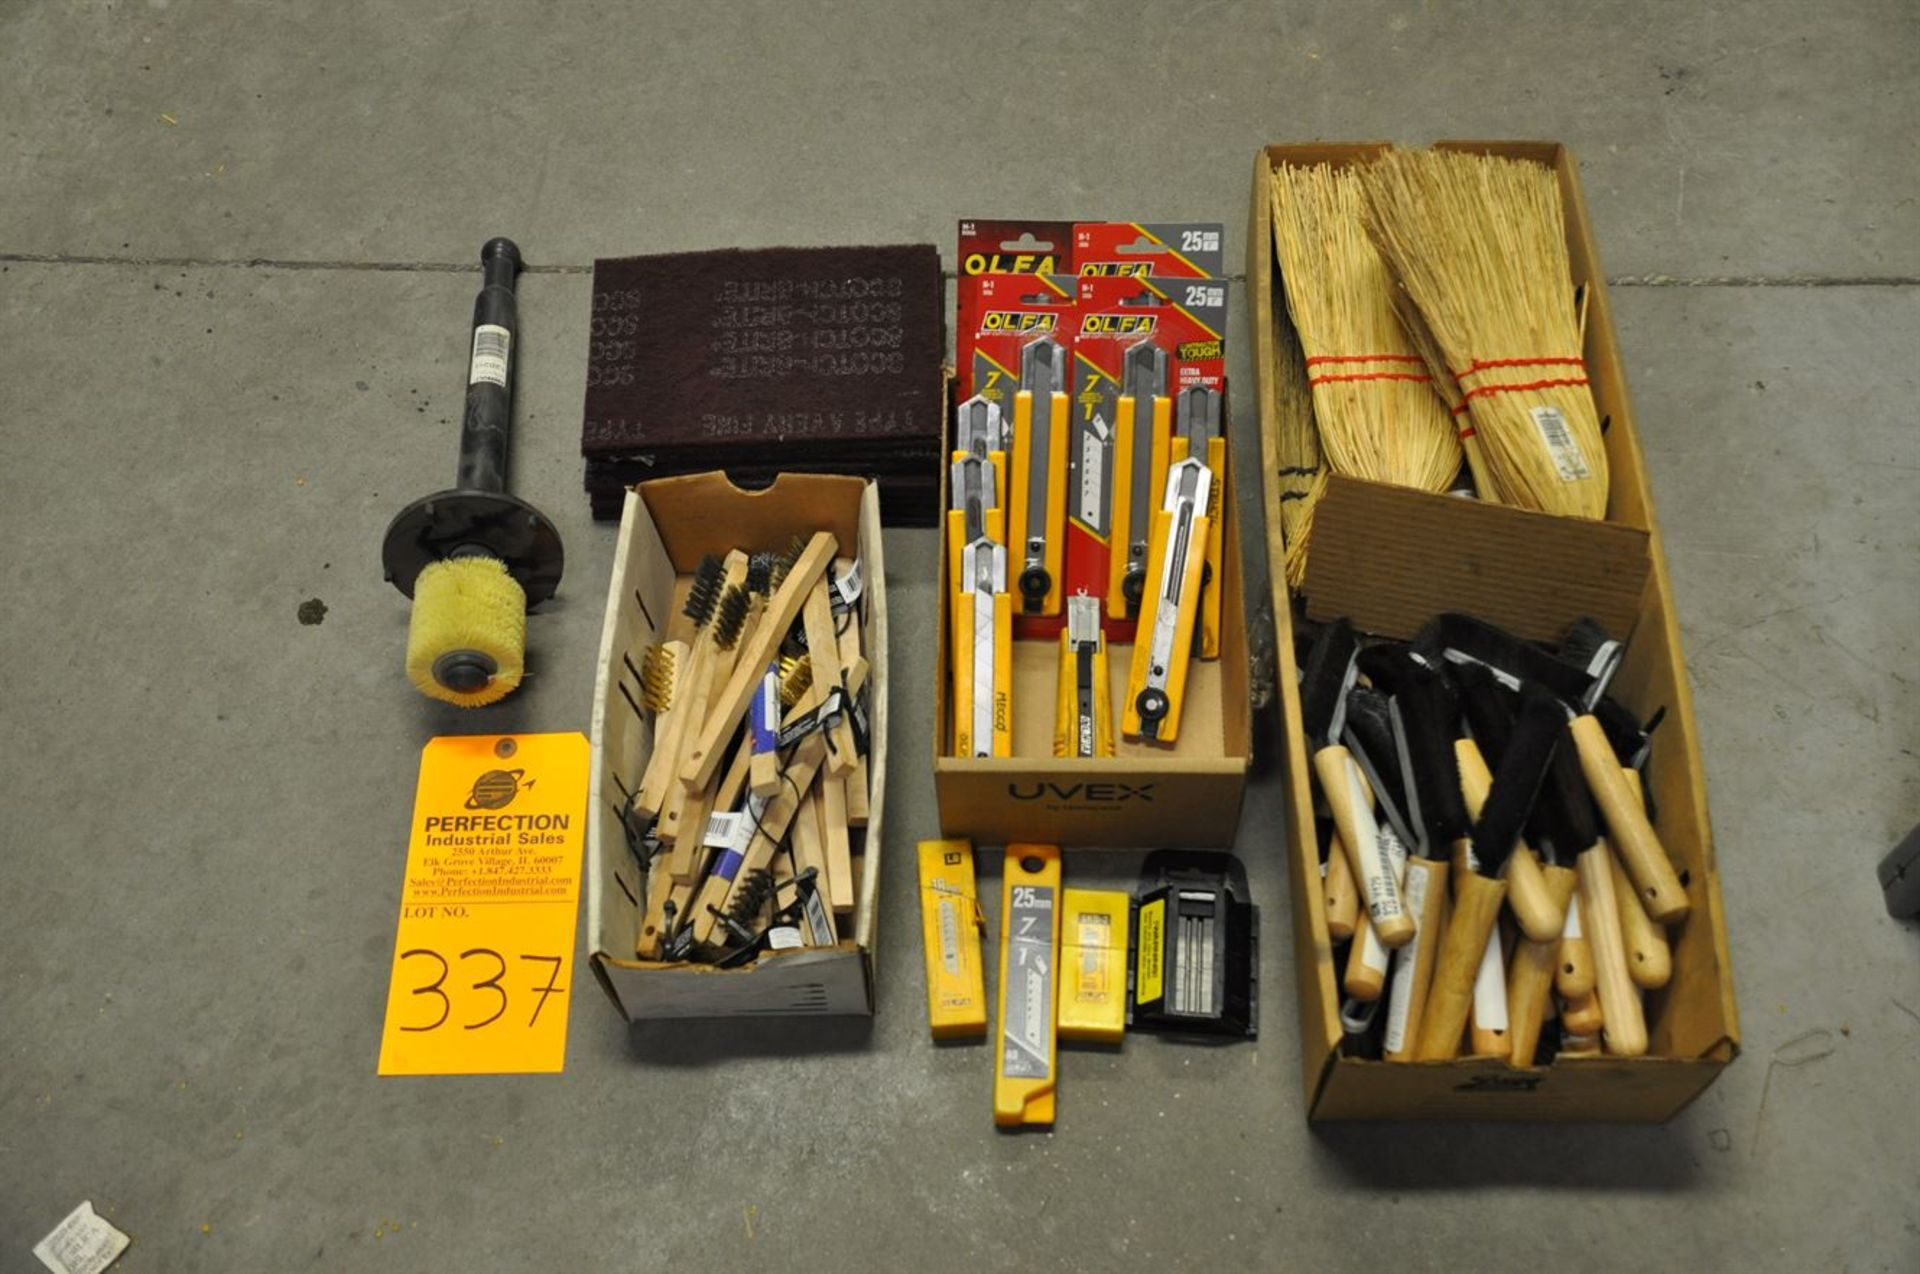 Assorted brushes, corn brooms, wire brushes, utility knives w/ spare blades